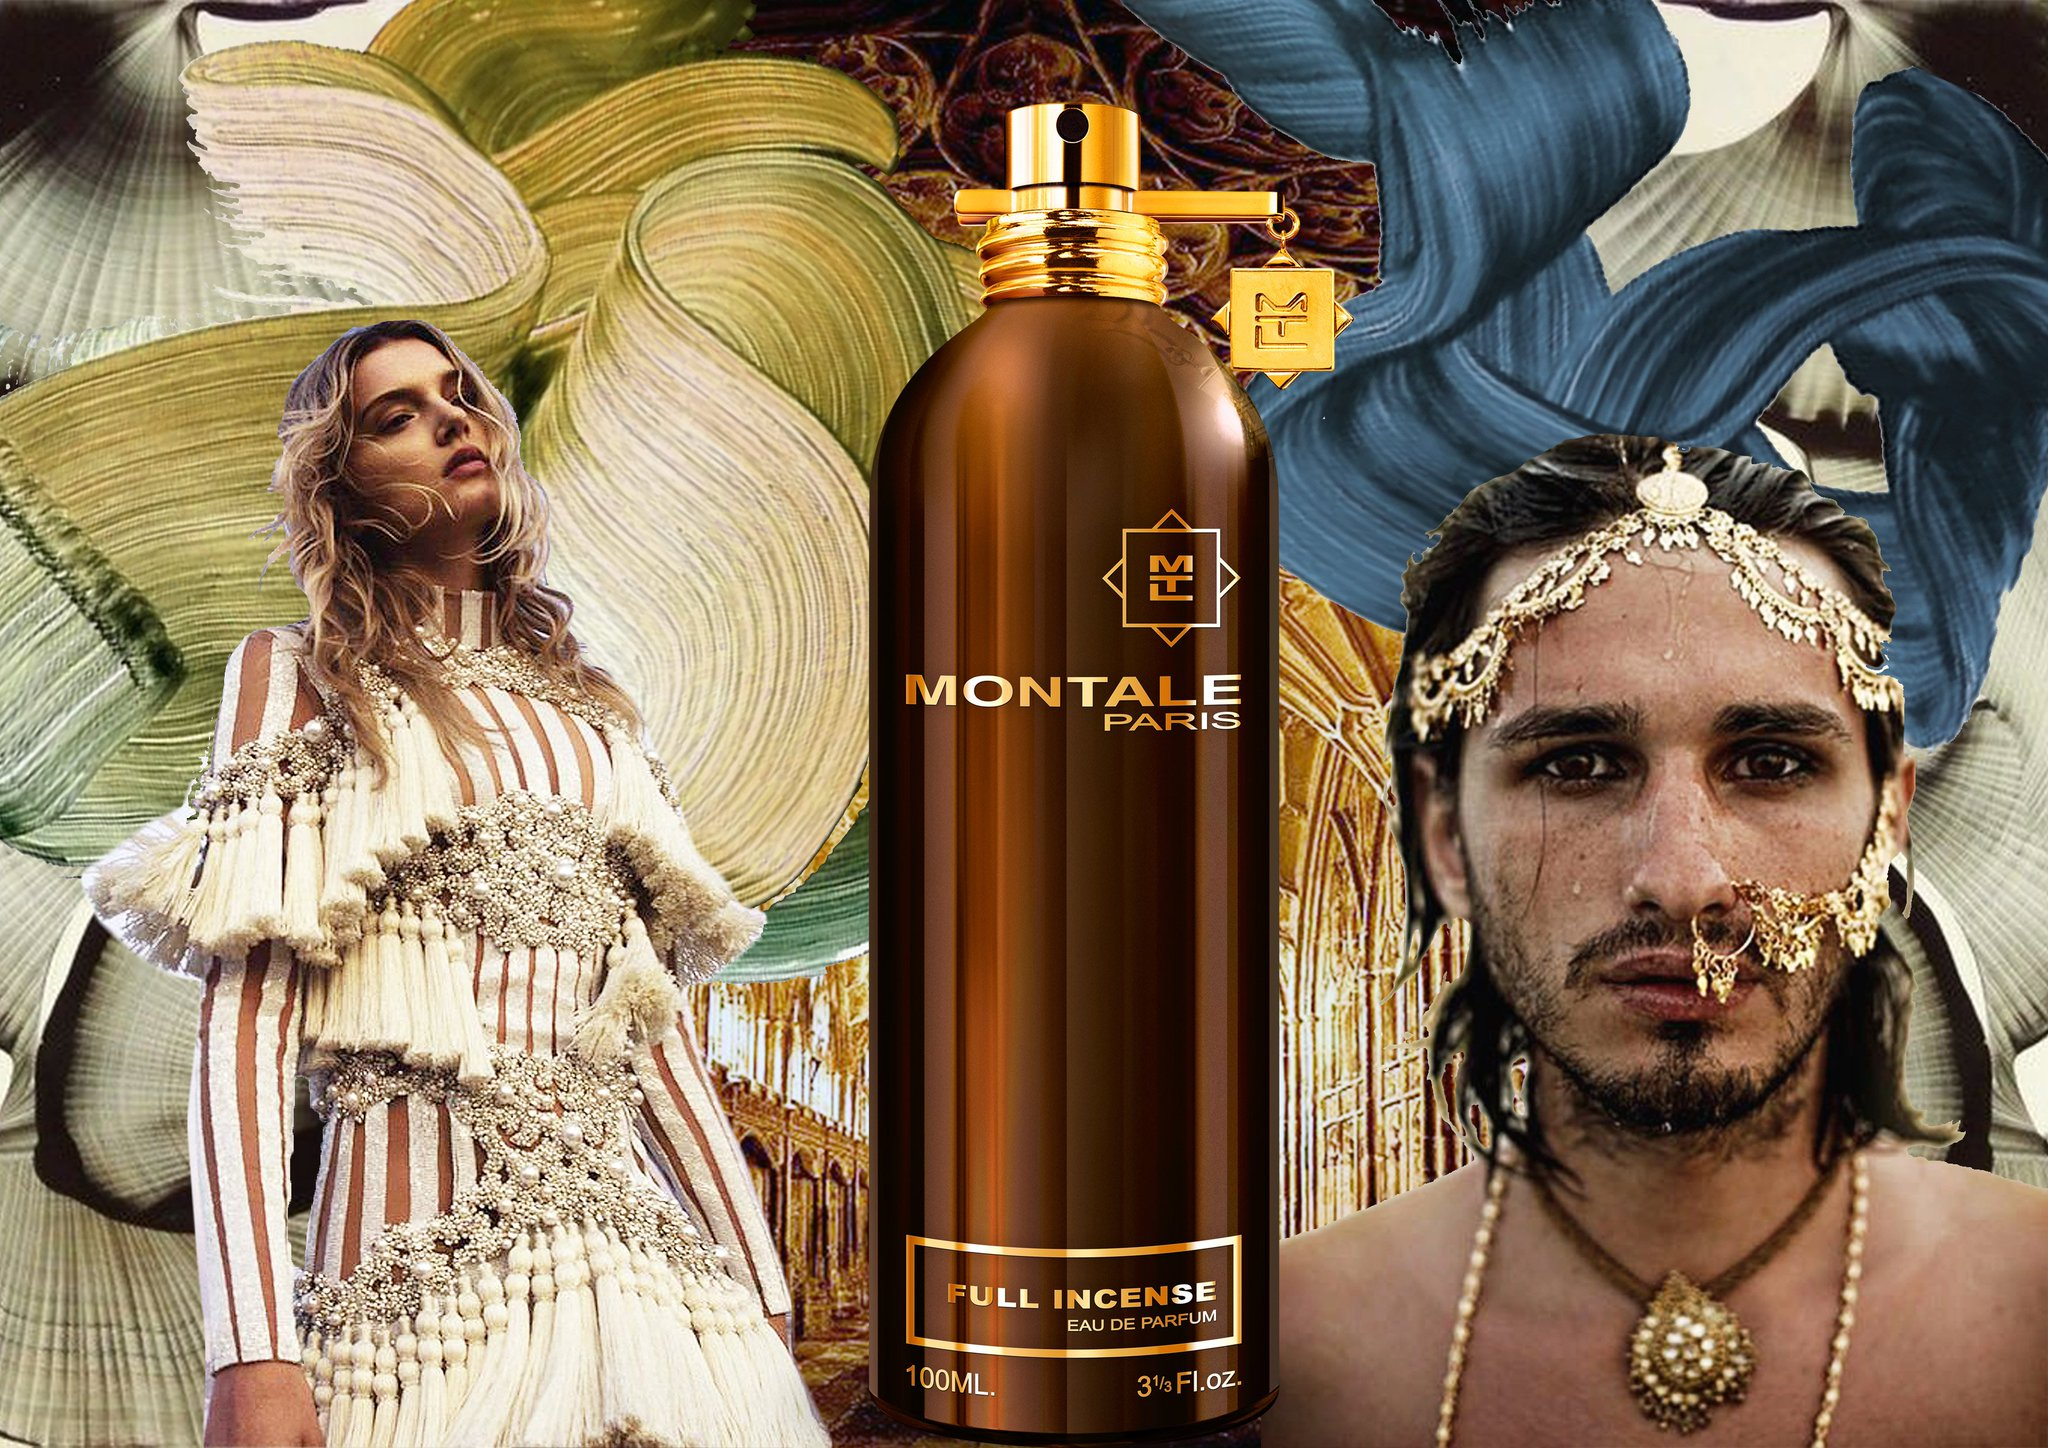 """MONTALE PARFUMS on Twitter: """"Find your inner peace with good vibes,  spiritual awakening & FULL INCENSE. #montale #luxury #perfume #orientalchic  #fragrance #luxe #paris… https://t.co/3VDfhCWHmr"""""""